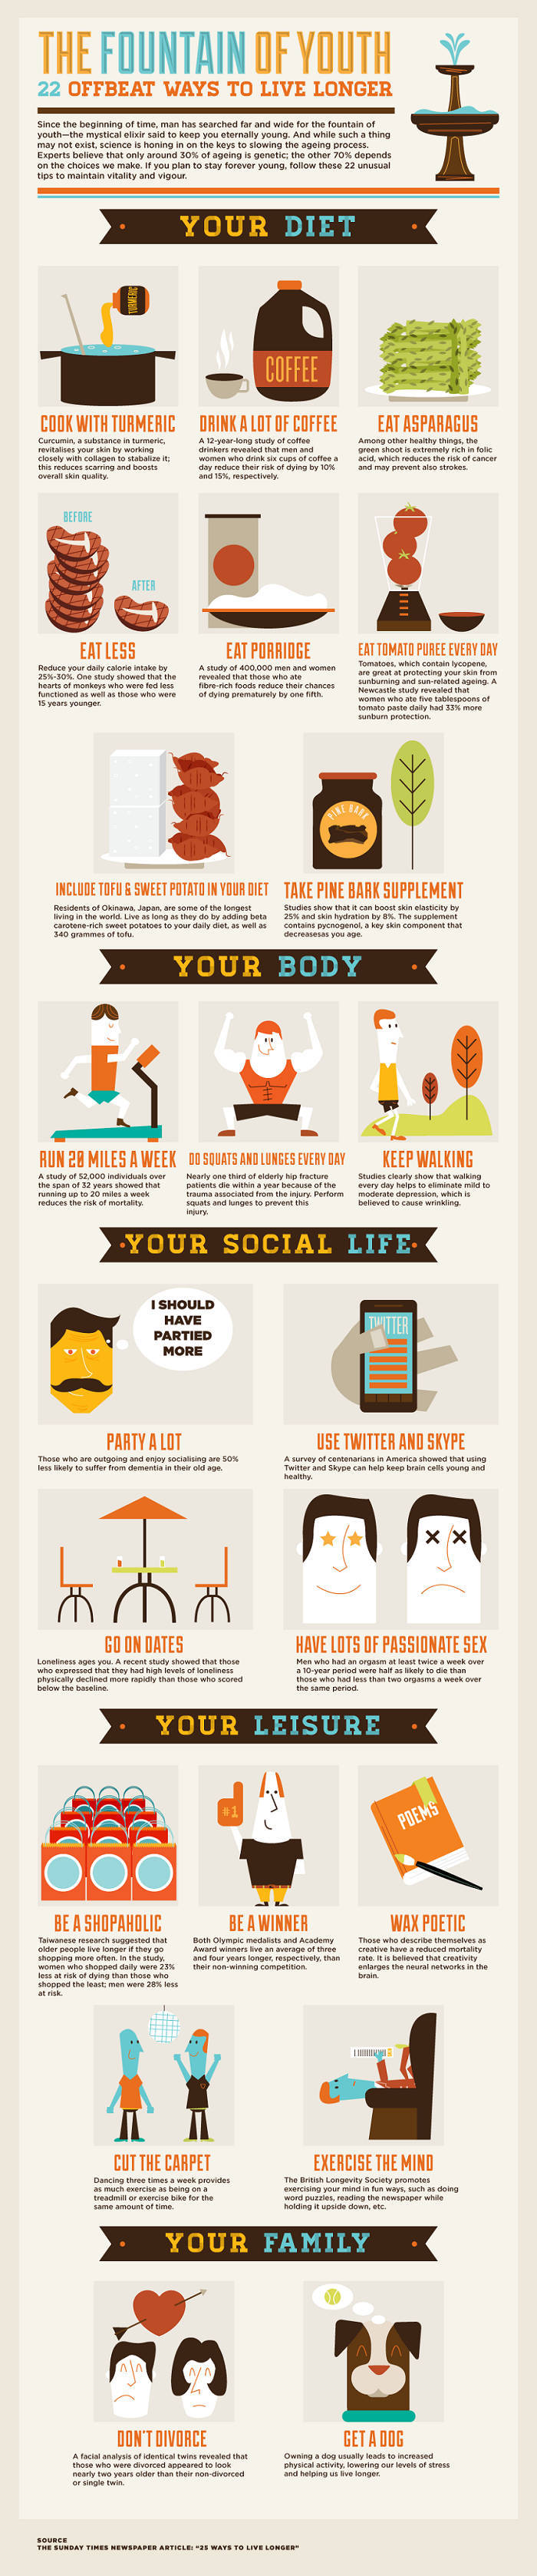 Life-Hacks-for-a-Longer-Life-Infographic (1)